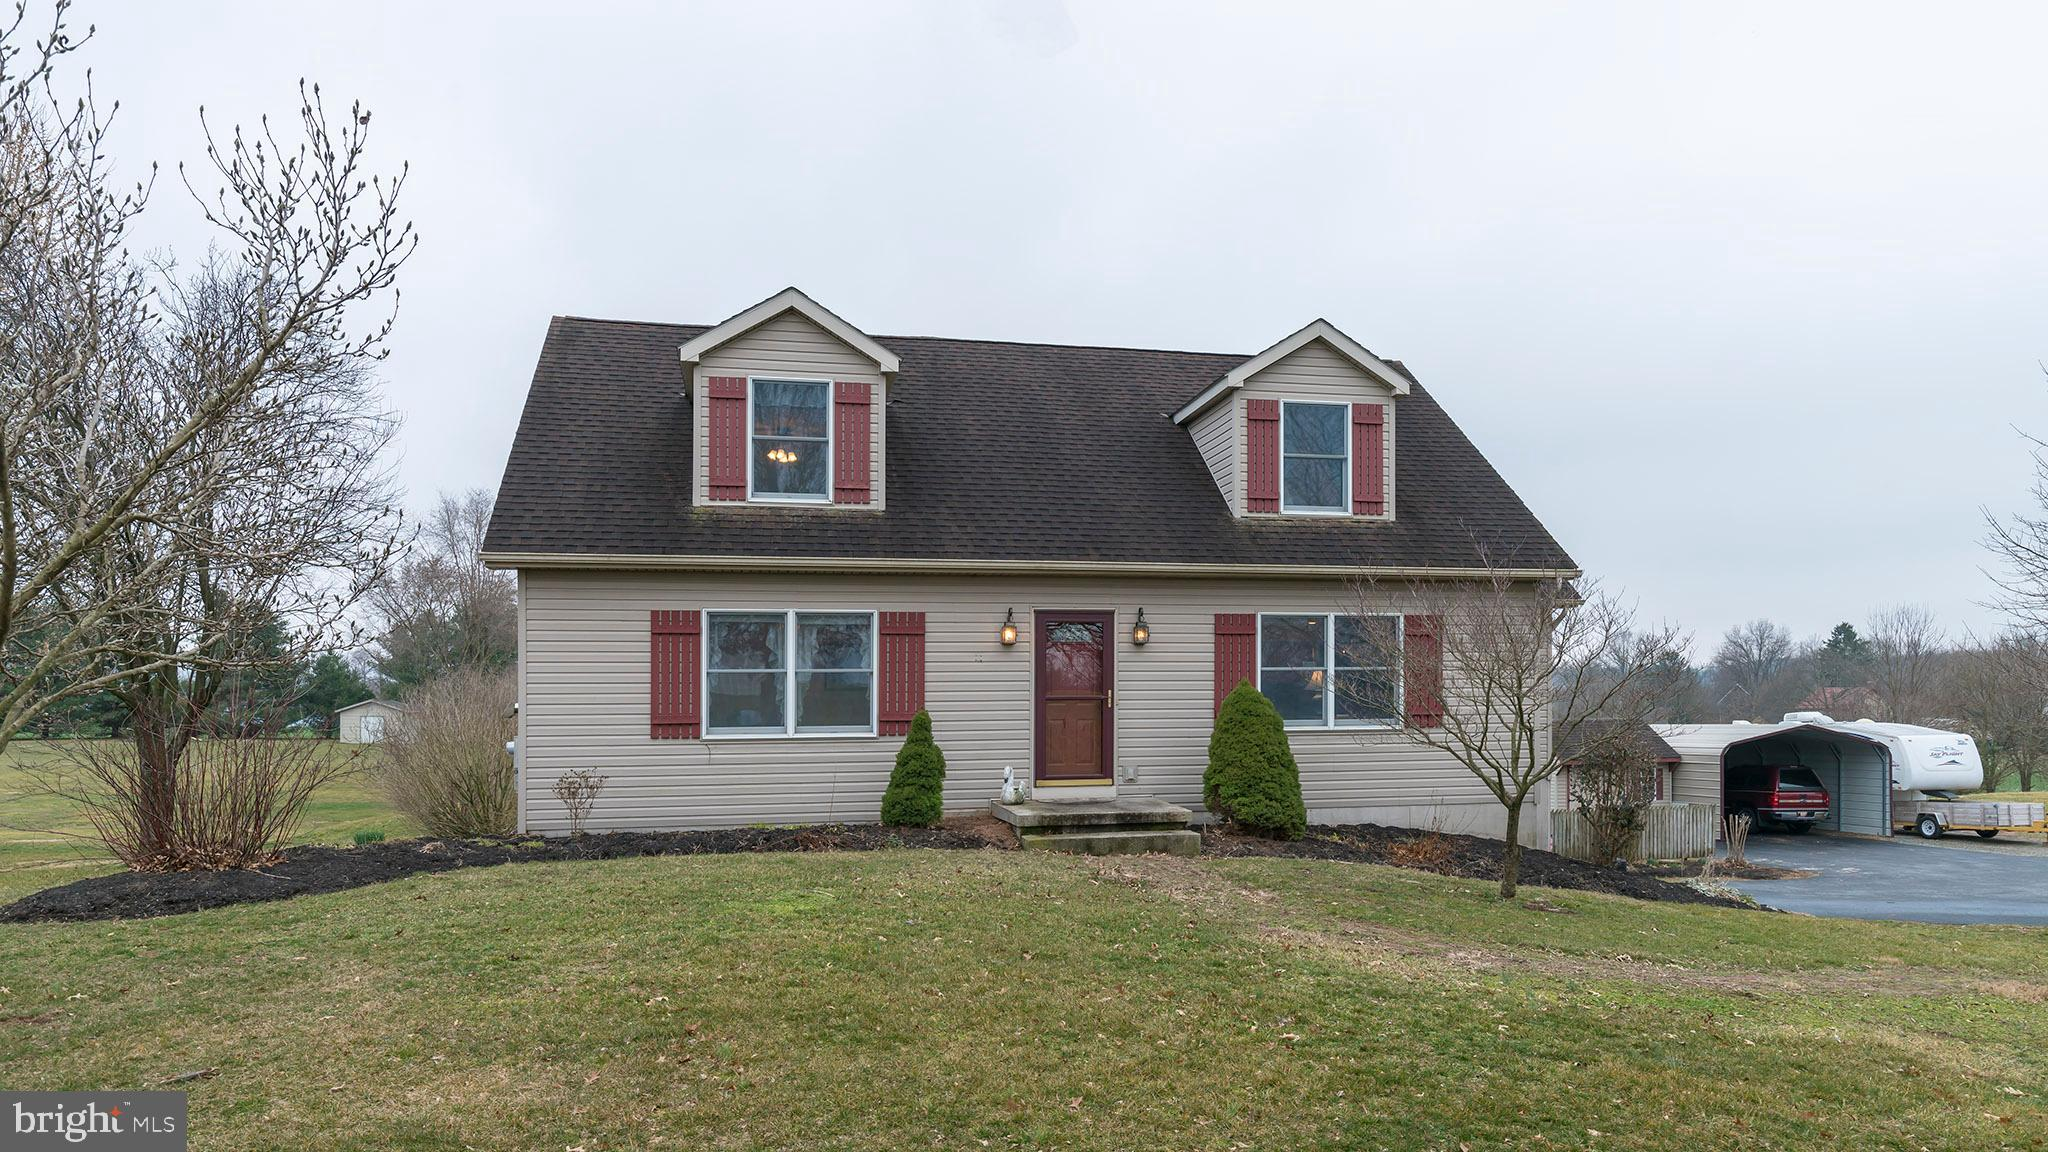 6120 WINDING LANE, EAST BERLIN, PA 17316